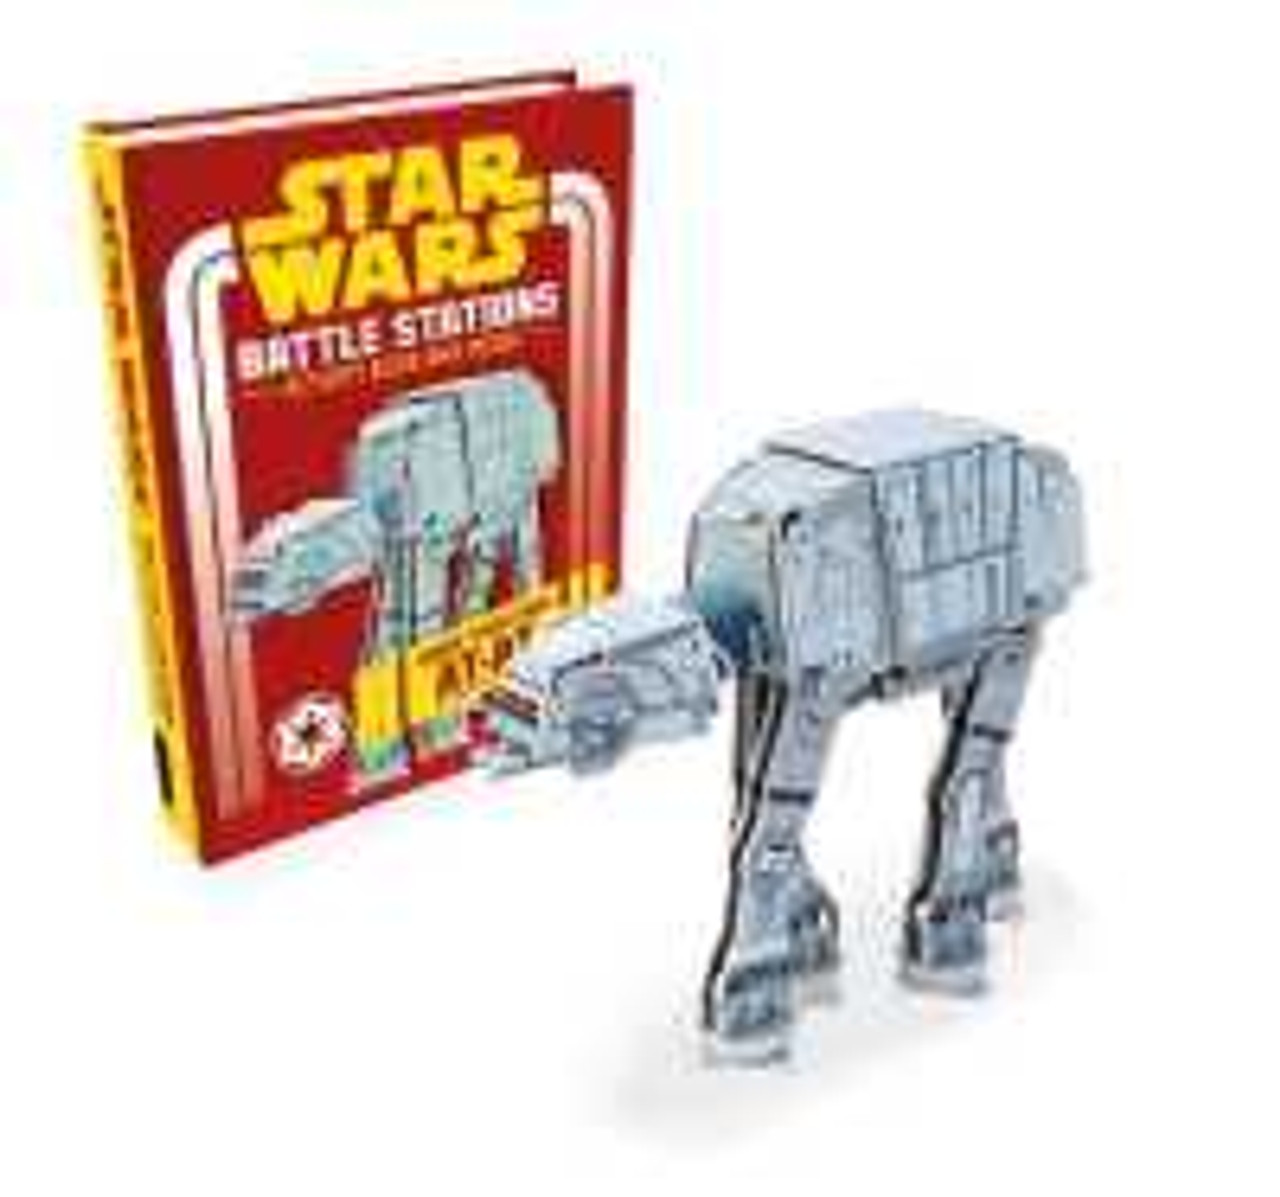 Star Wars Battle Stations - activity book and model.  Make your own AT-AT.